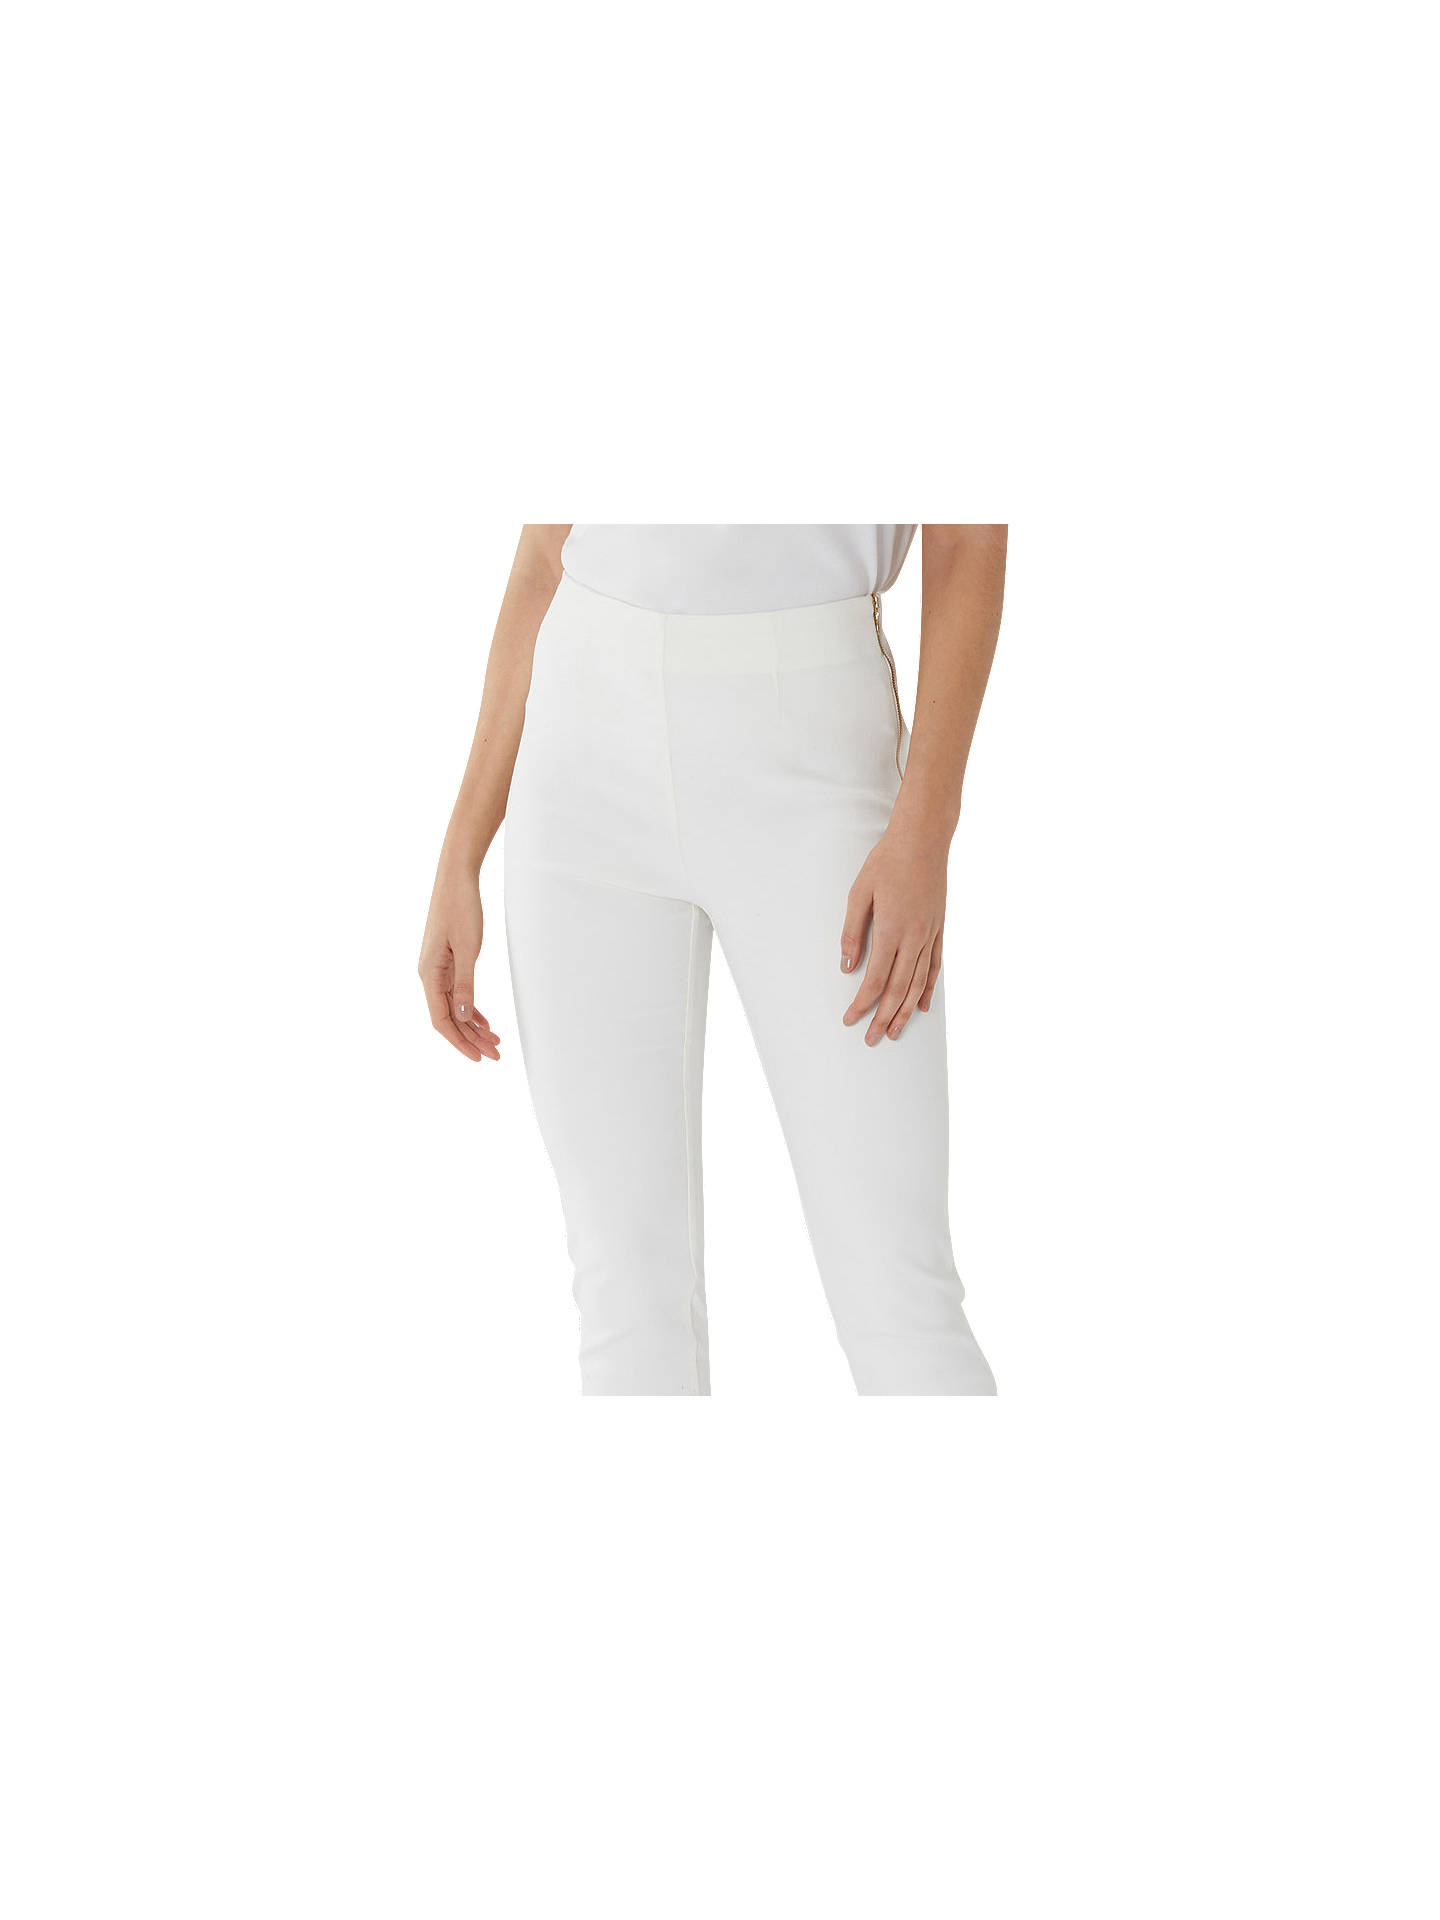 BuyCoast Alexa Trousers, Ivory, 6 Online at johnlewis.com